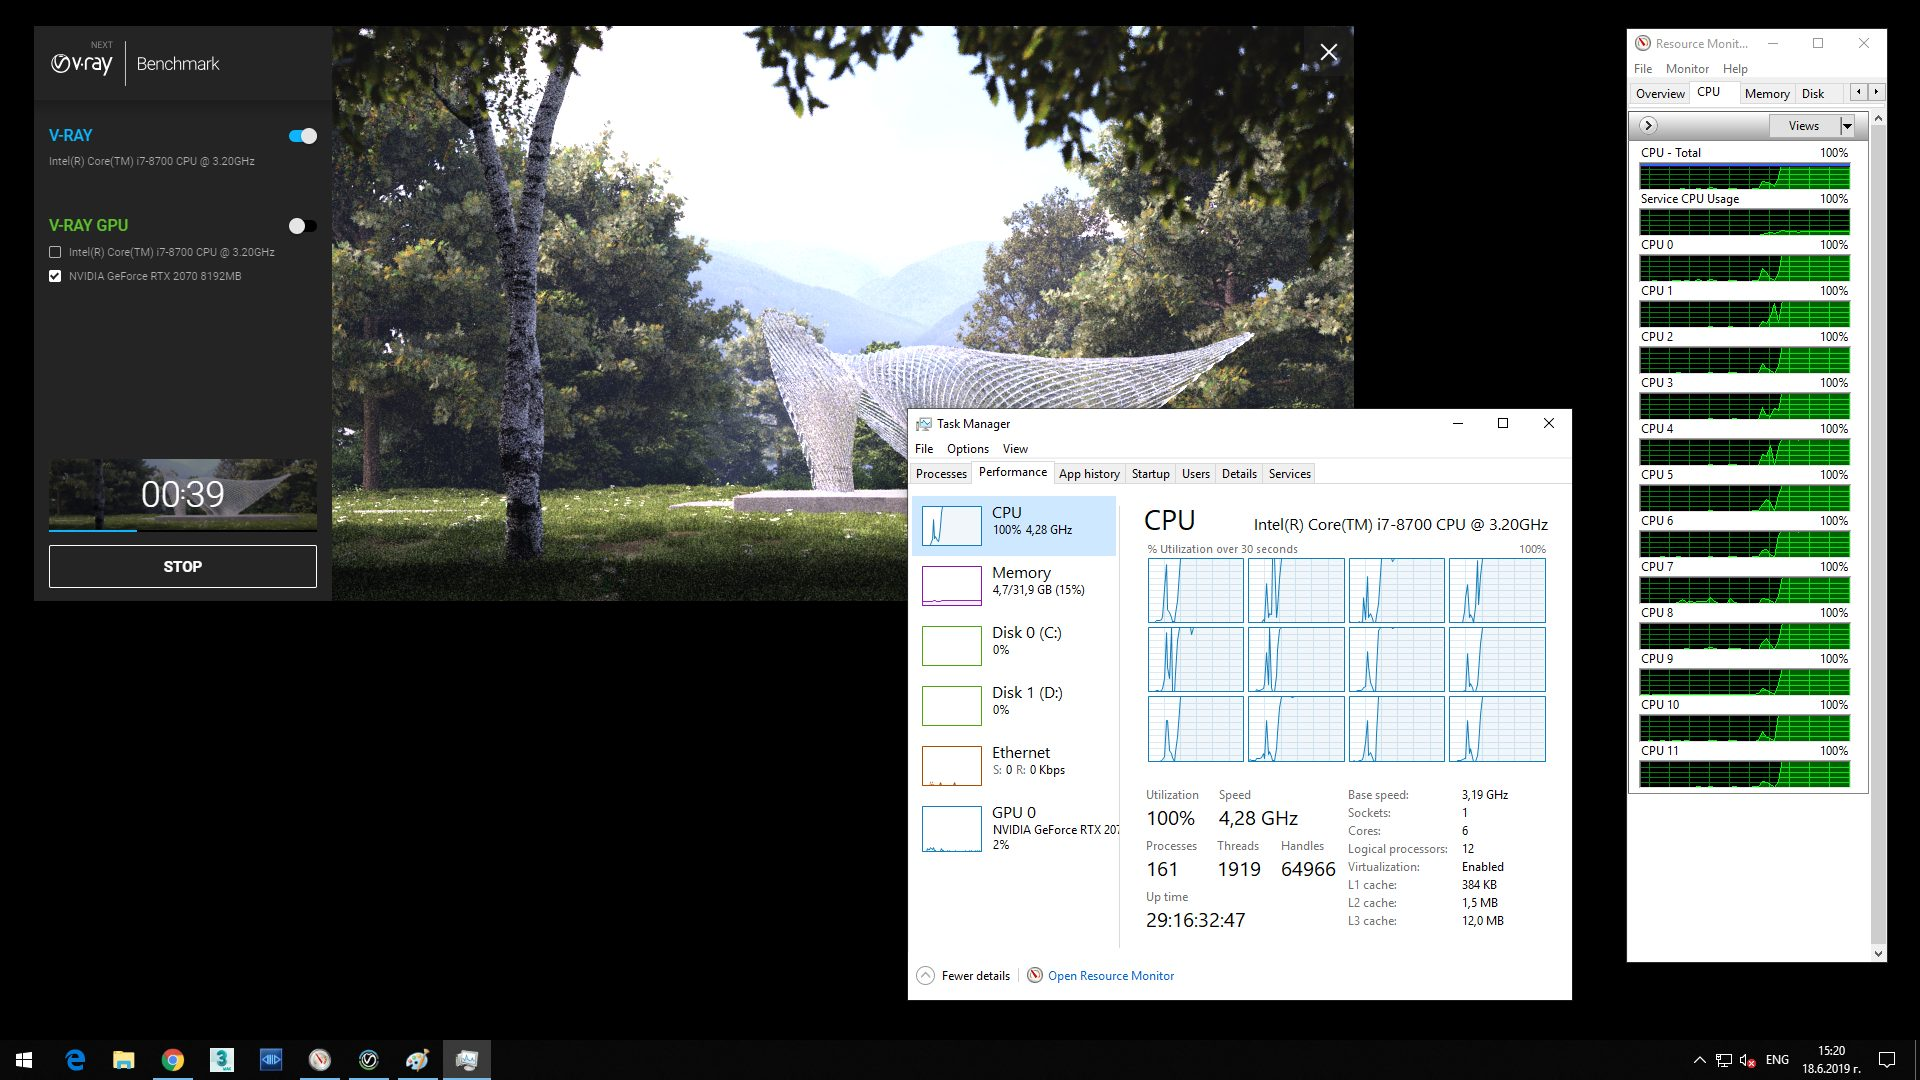 Screenshot of V-Ray Next Benchmark and opened Task Manager showing 12 CPU and hyperthreading on, processing the image.